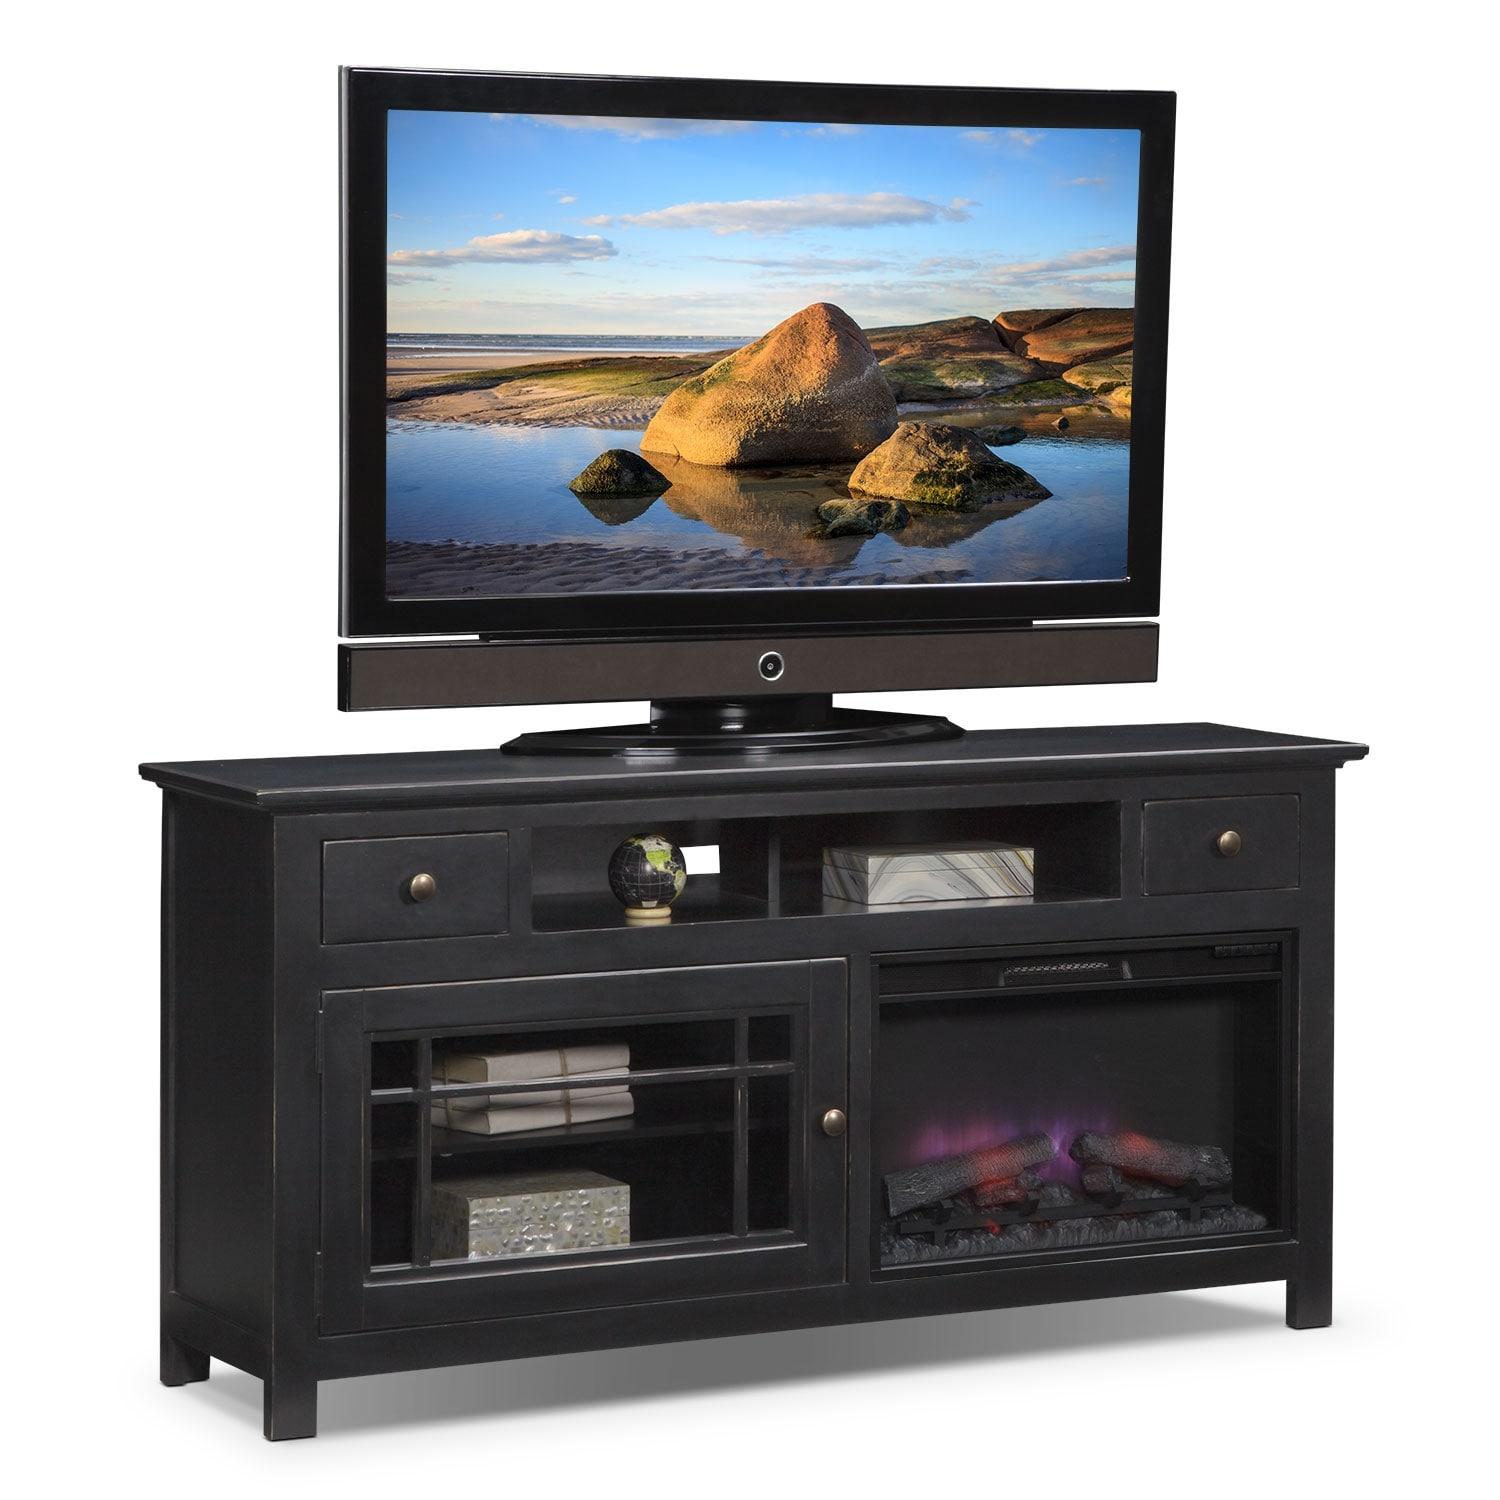 Find Every Shop In The World Selling Sotto Tv Stand With Fireplace